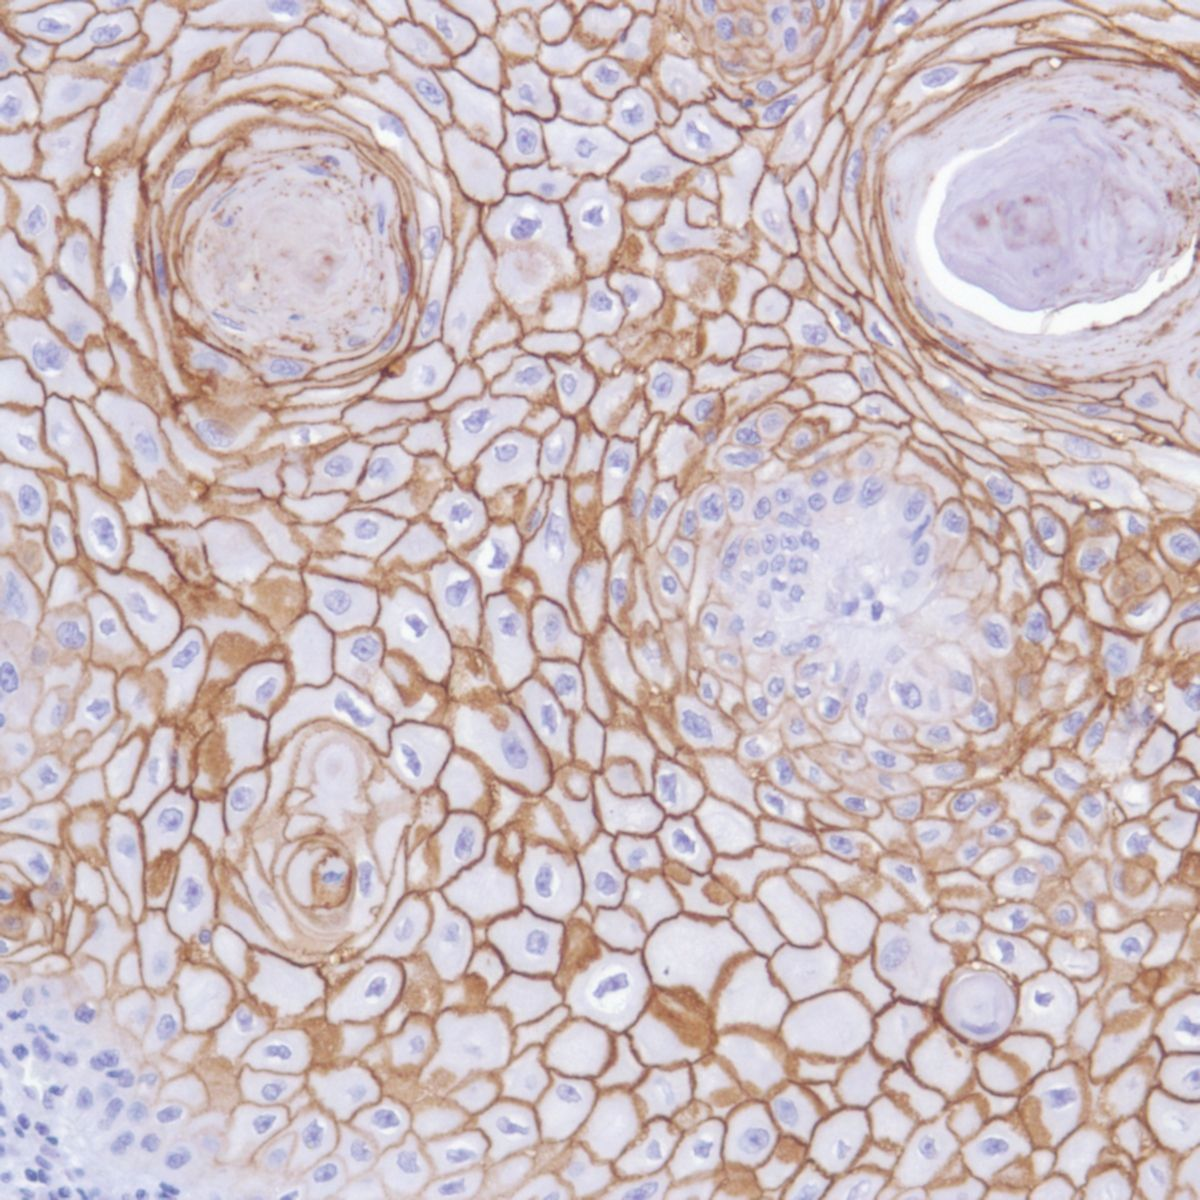 Human Skin squamous cell carcinoma stained with anti-TROP-2 antibody